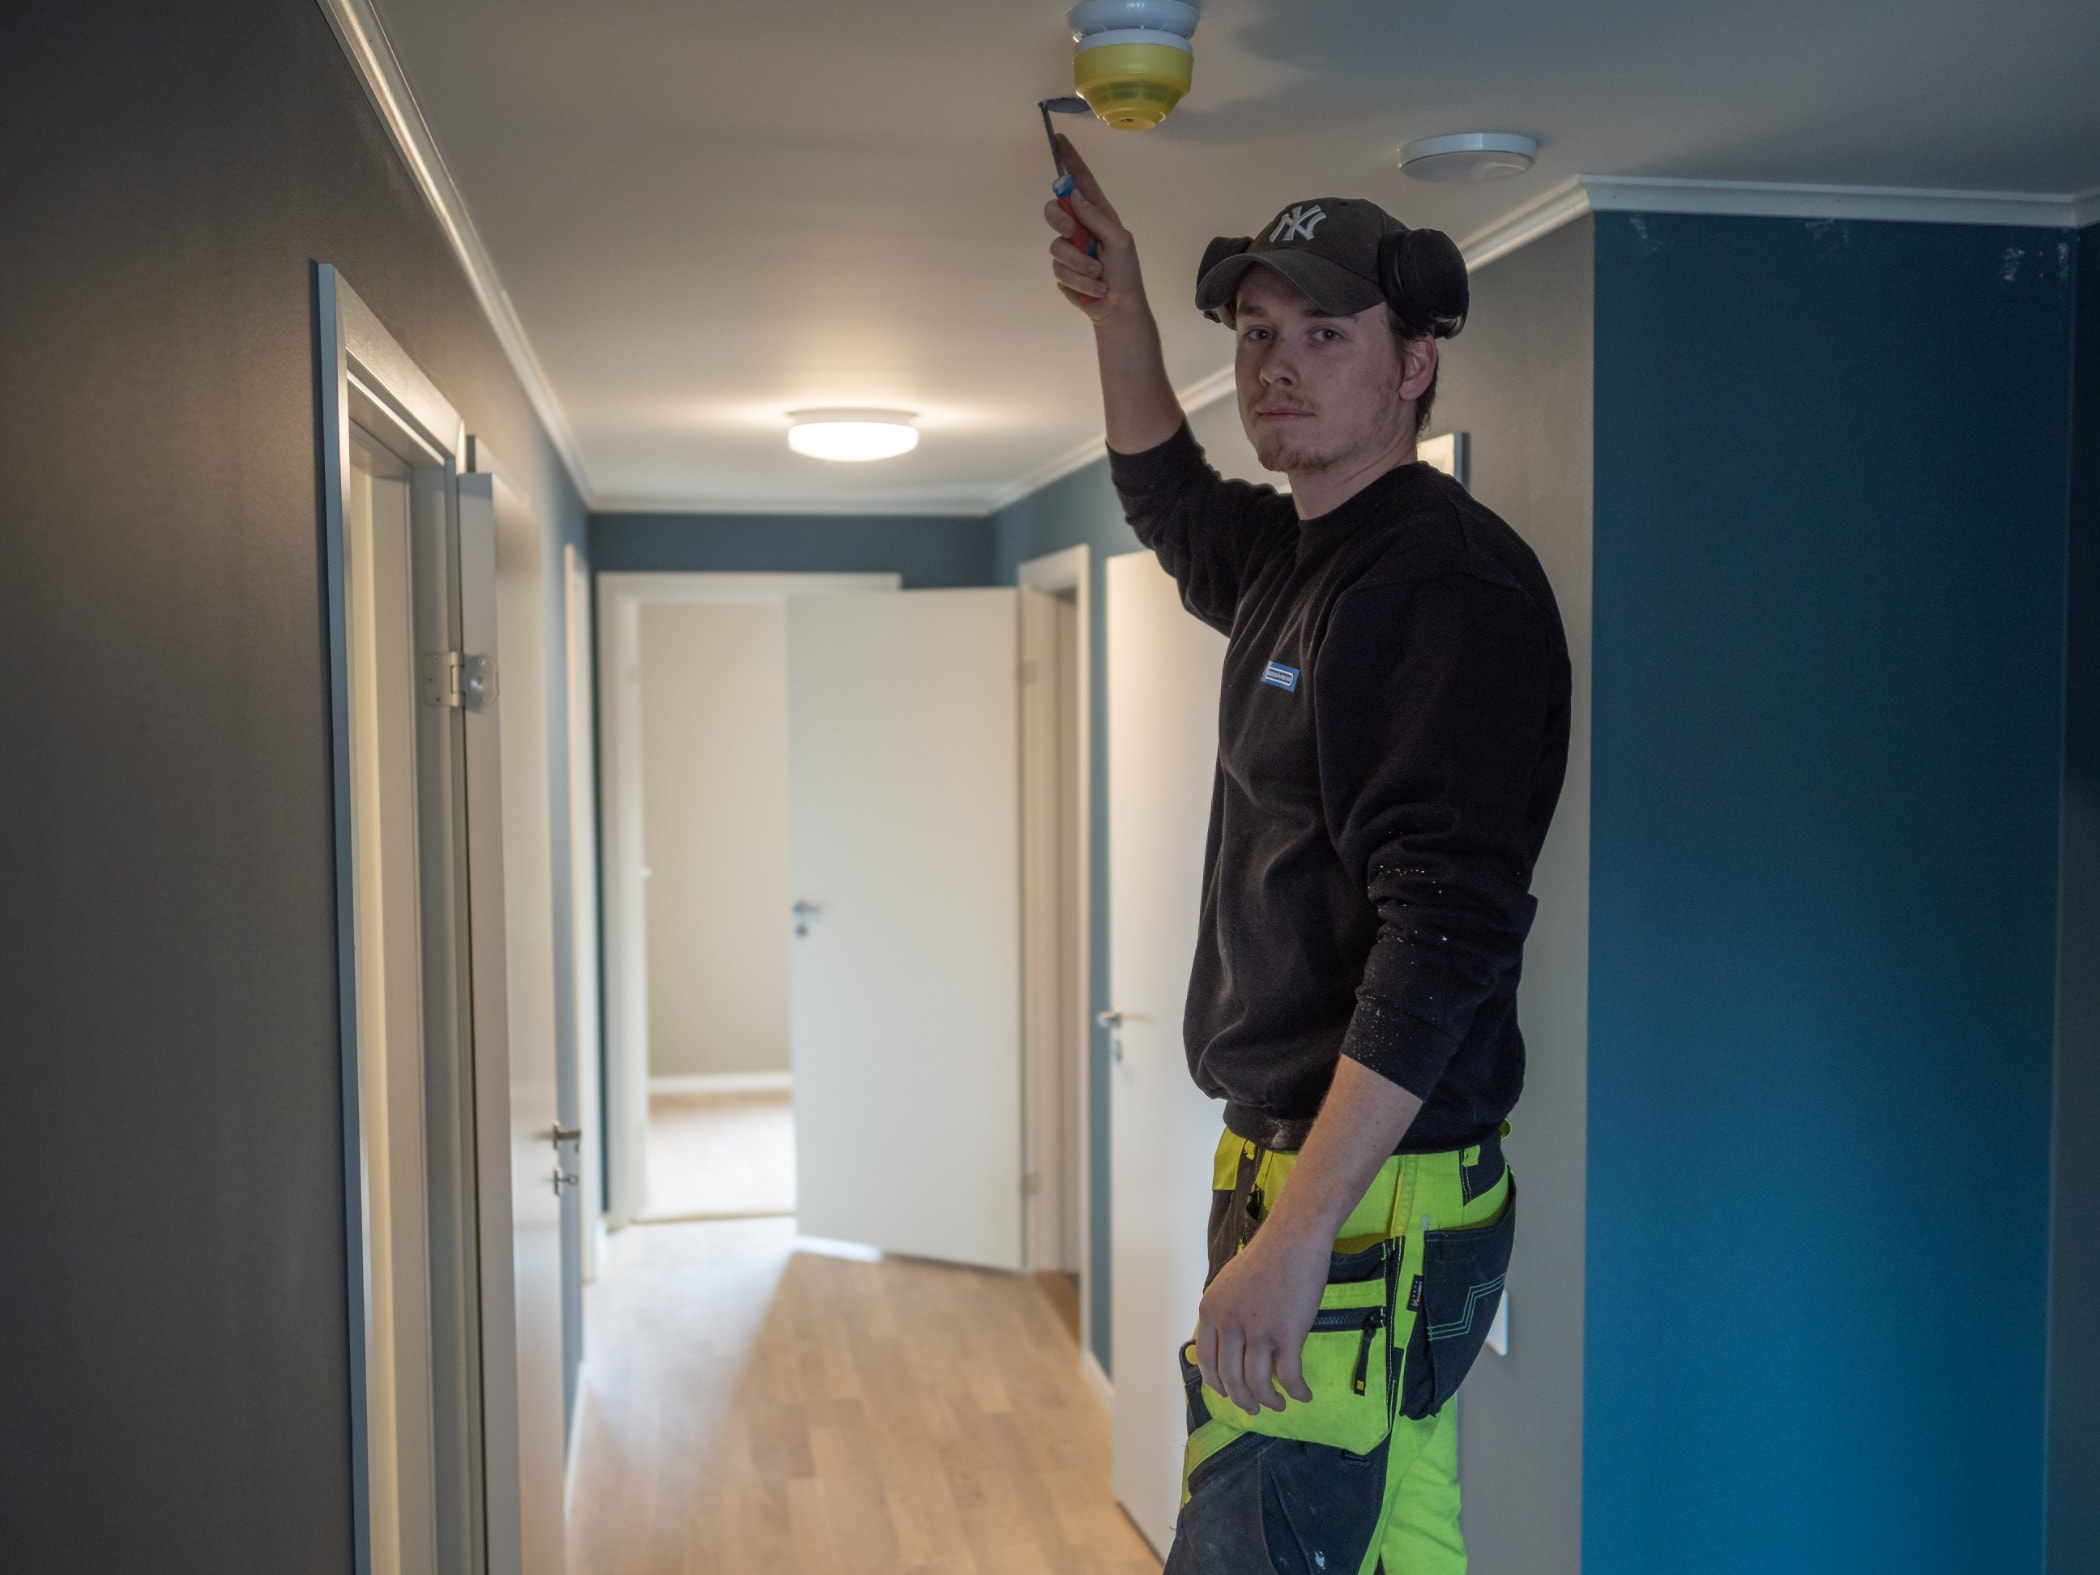 Ceiling, Yellow, Room, Standing